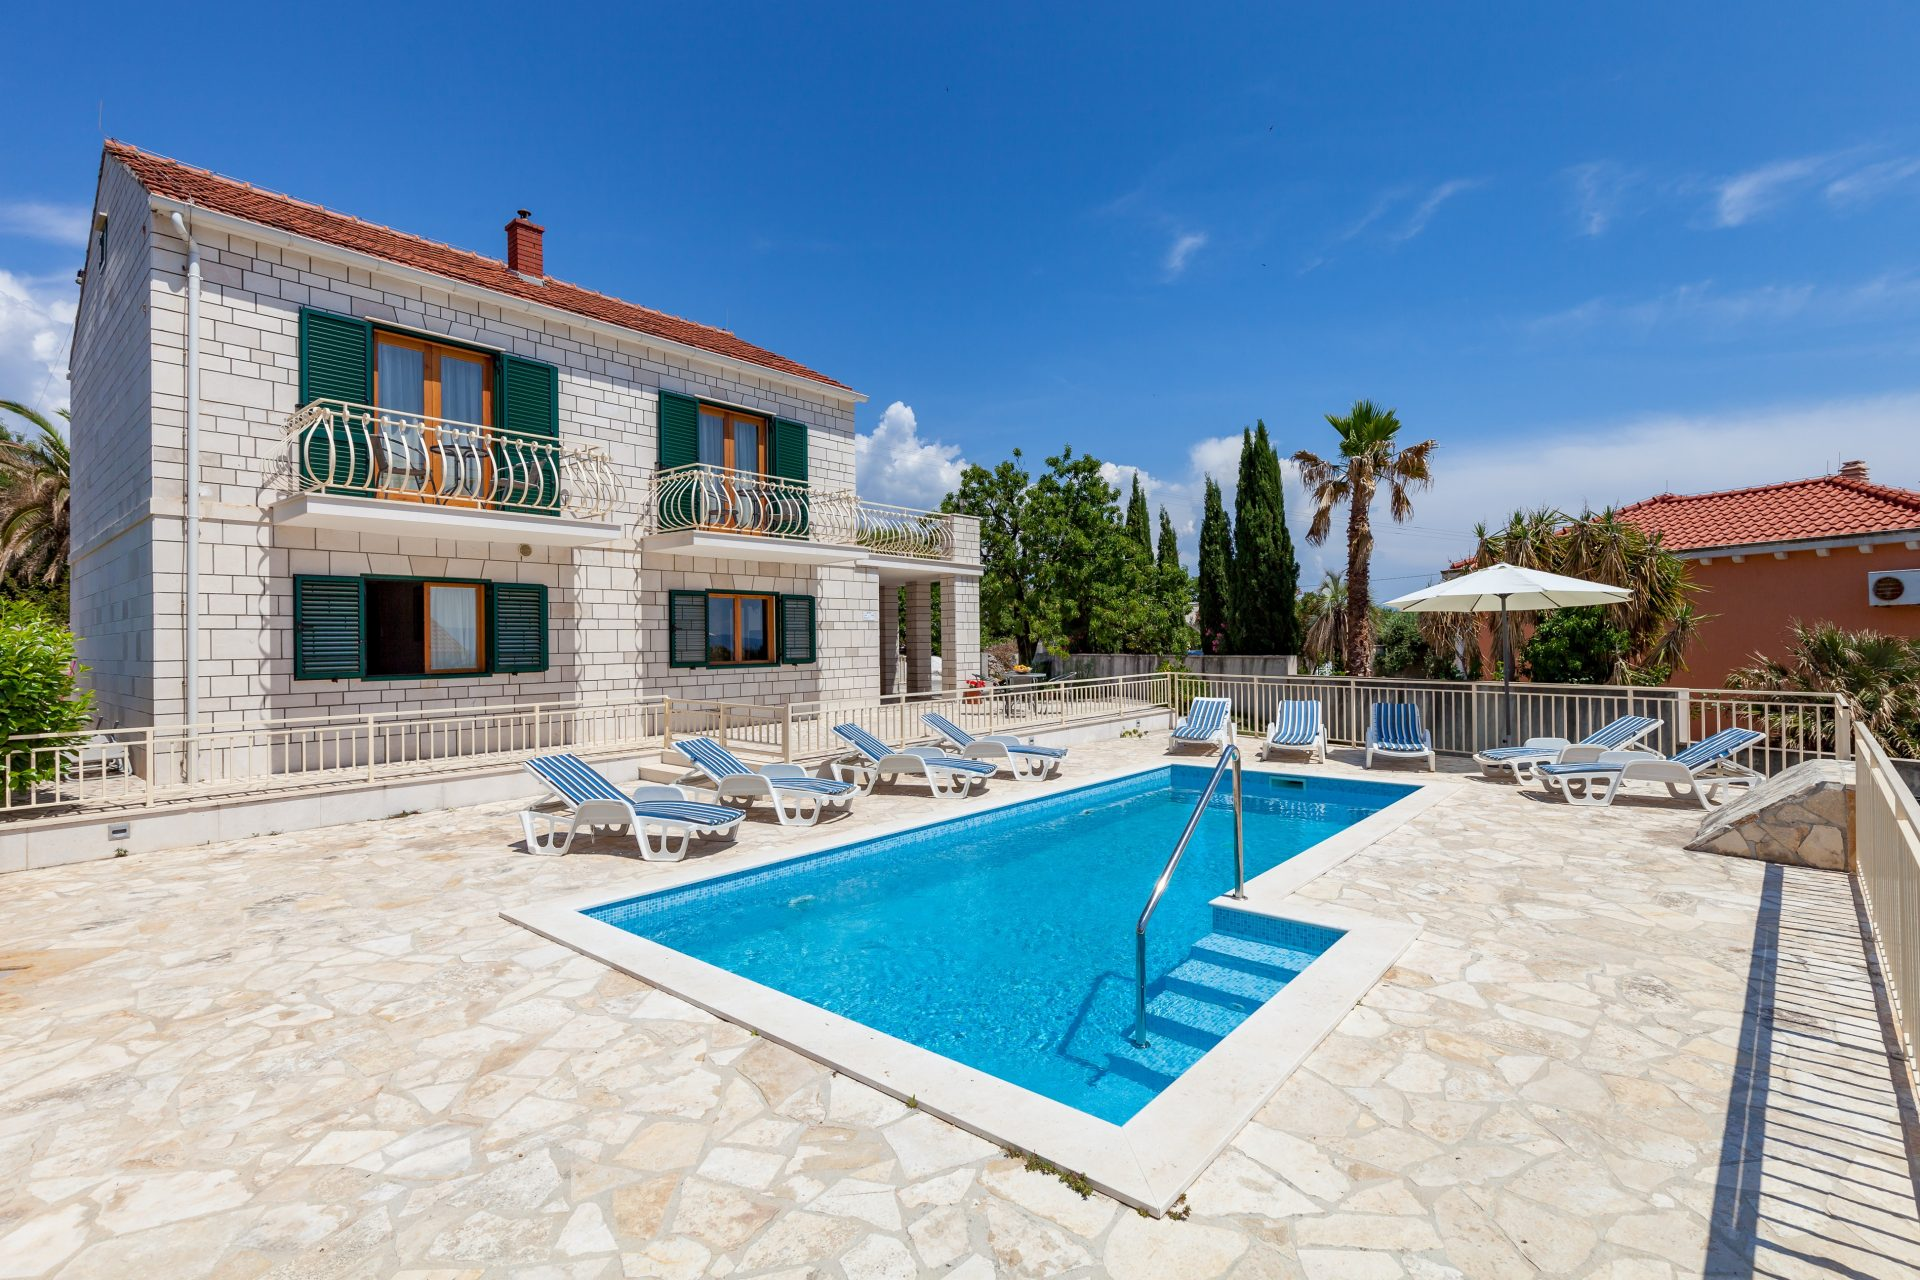 Villa Vjeka with the swimming pool and sunbeds for renting